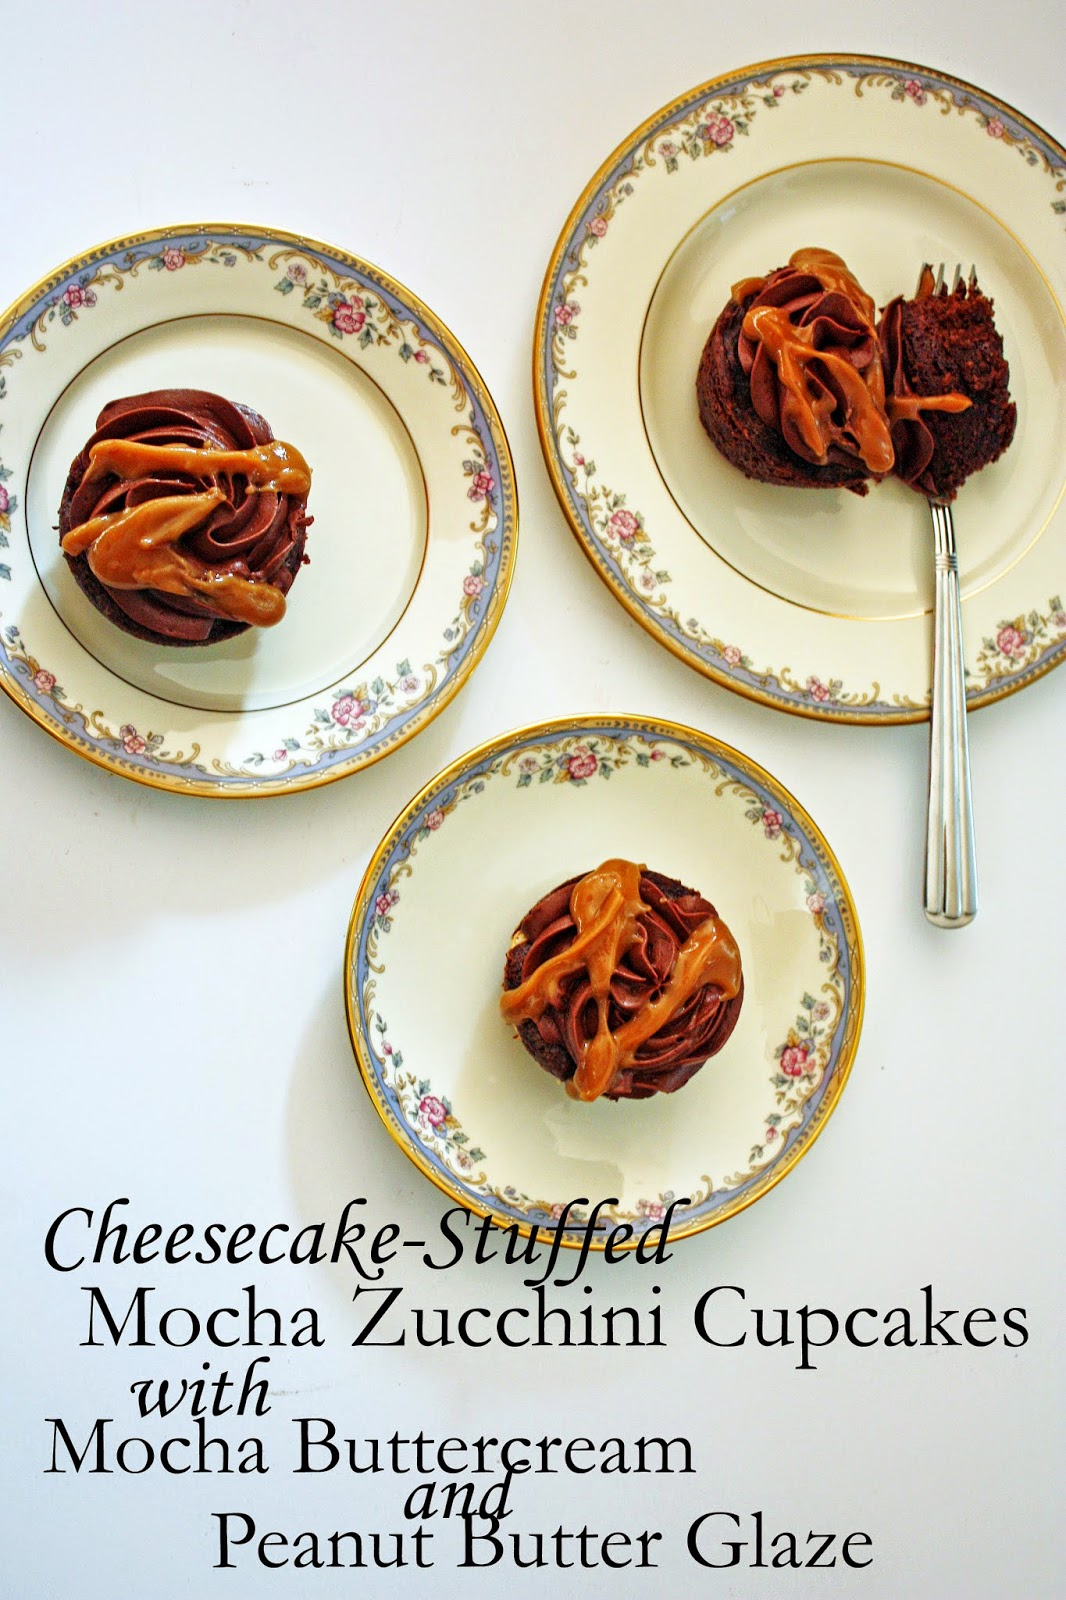 cheesecake-stuffed mocha zucchini cupcakes with mocha frosting and peanut butter glaze